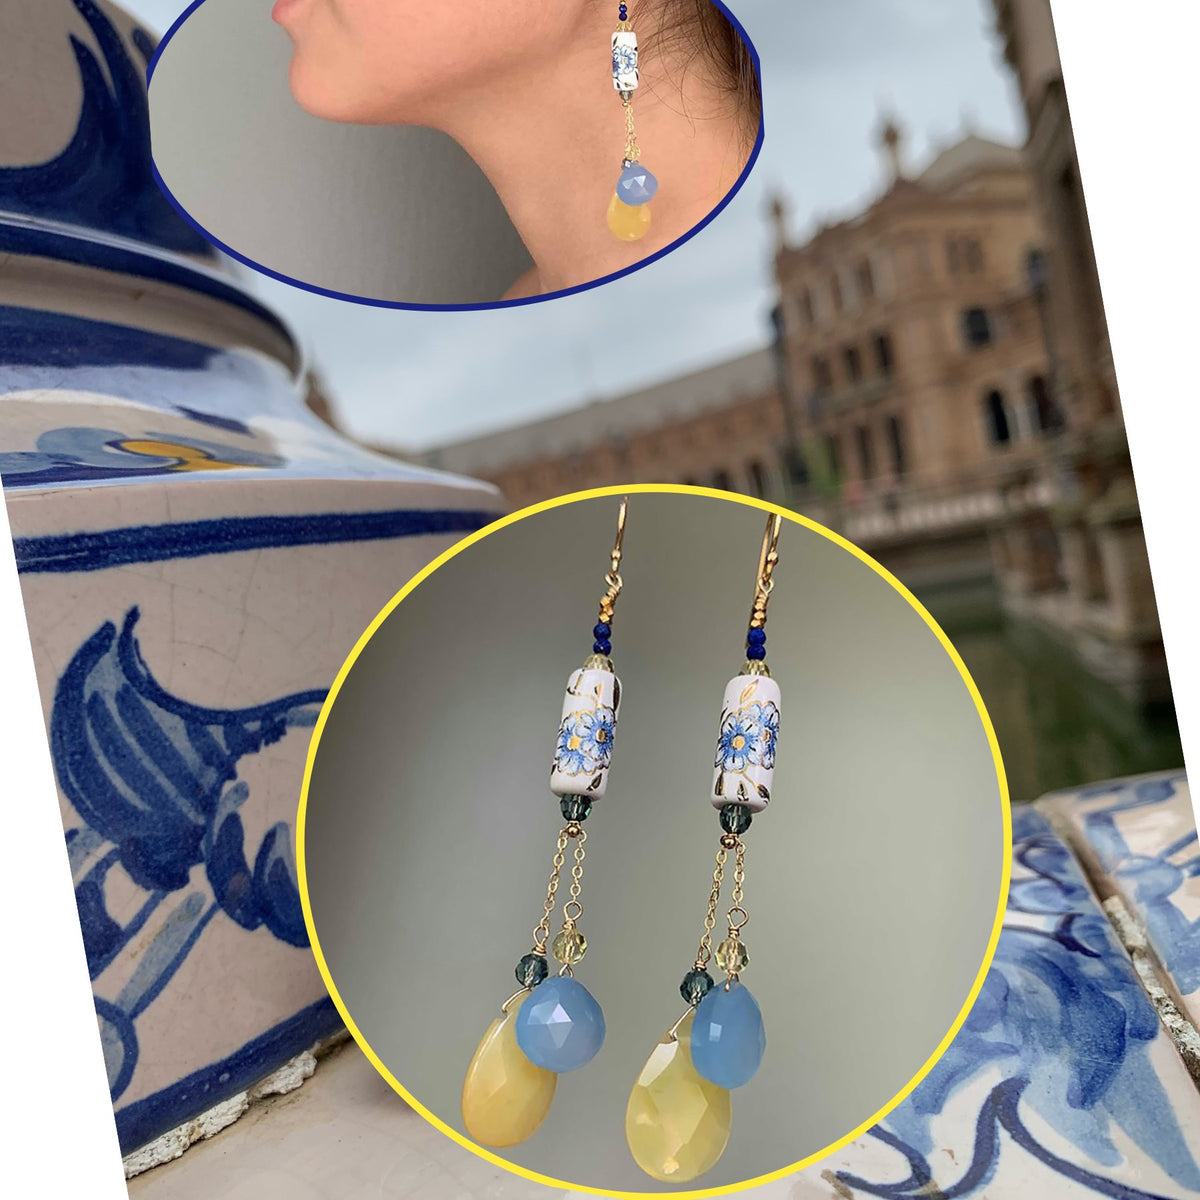 Plaza de España earrings